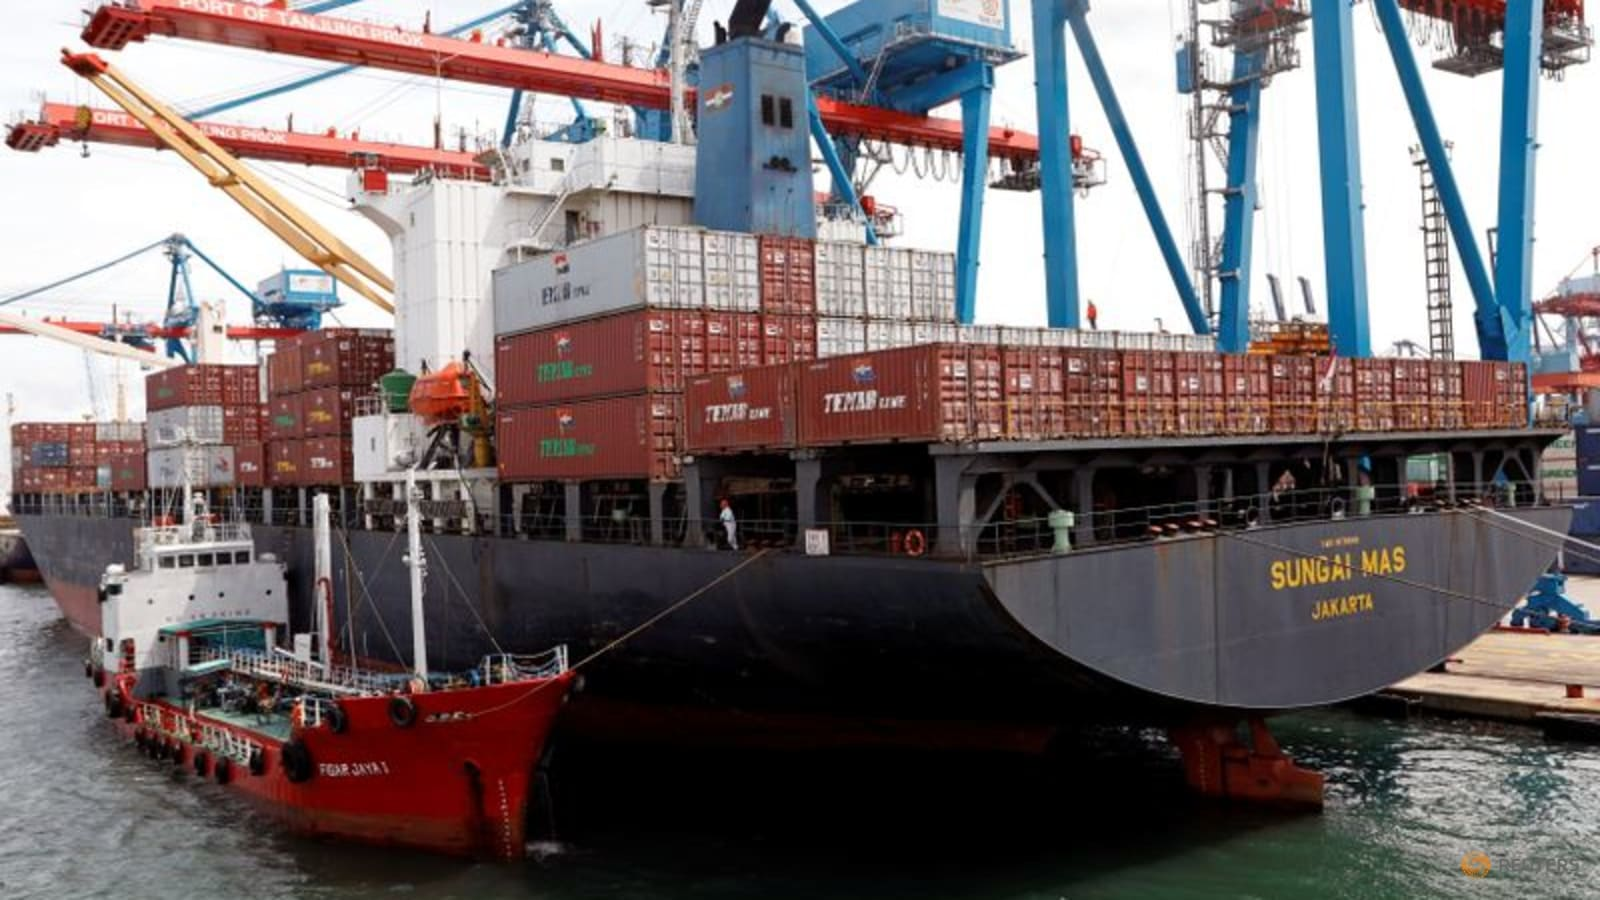 Indonesia's August exports hit record high on resources boom thumbnail